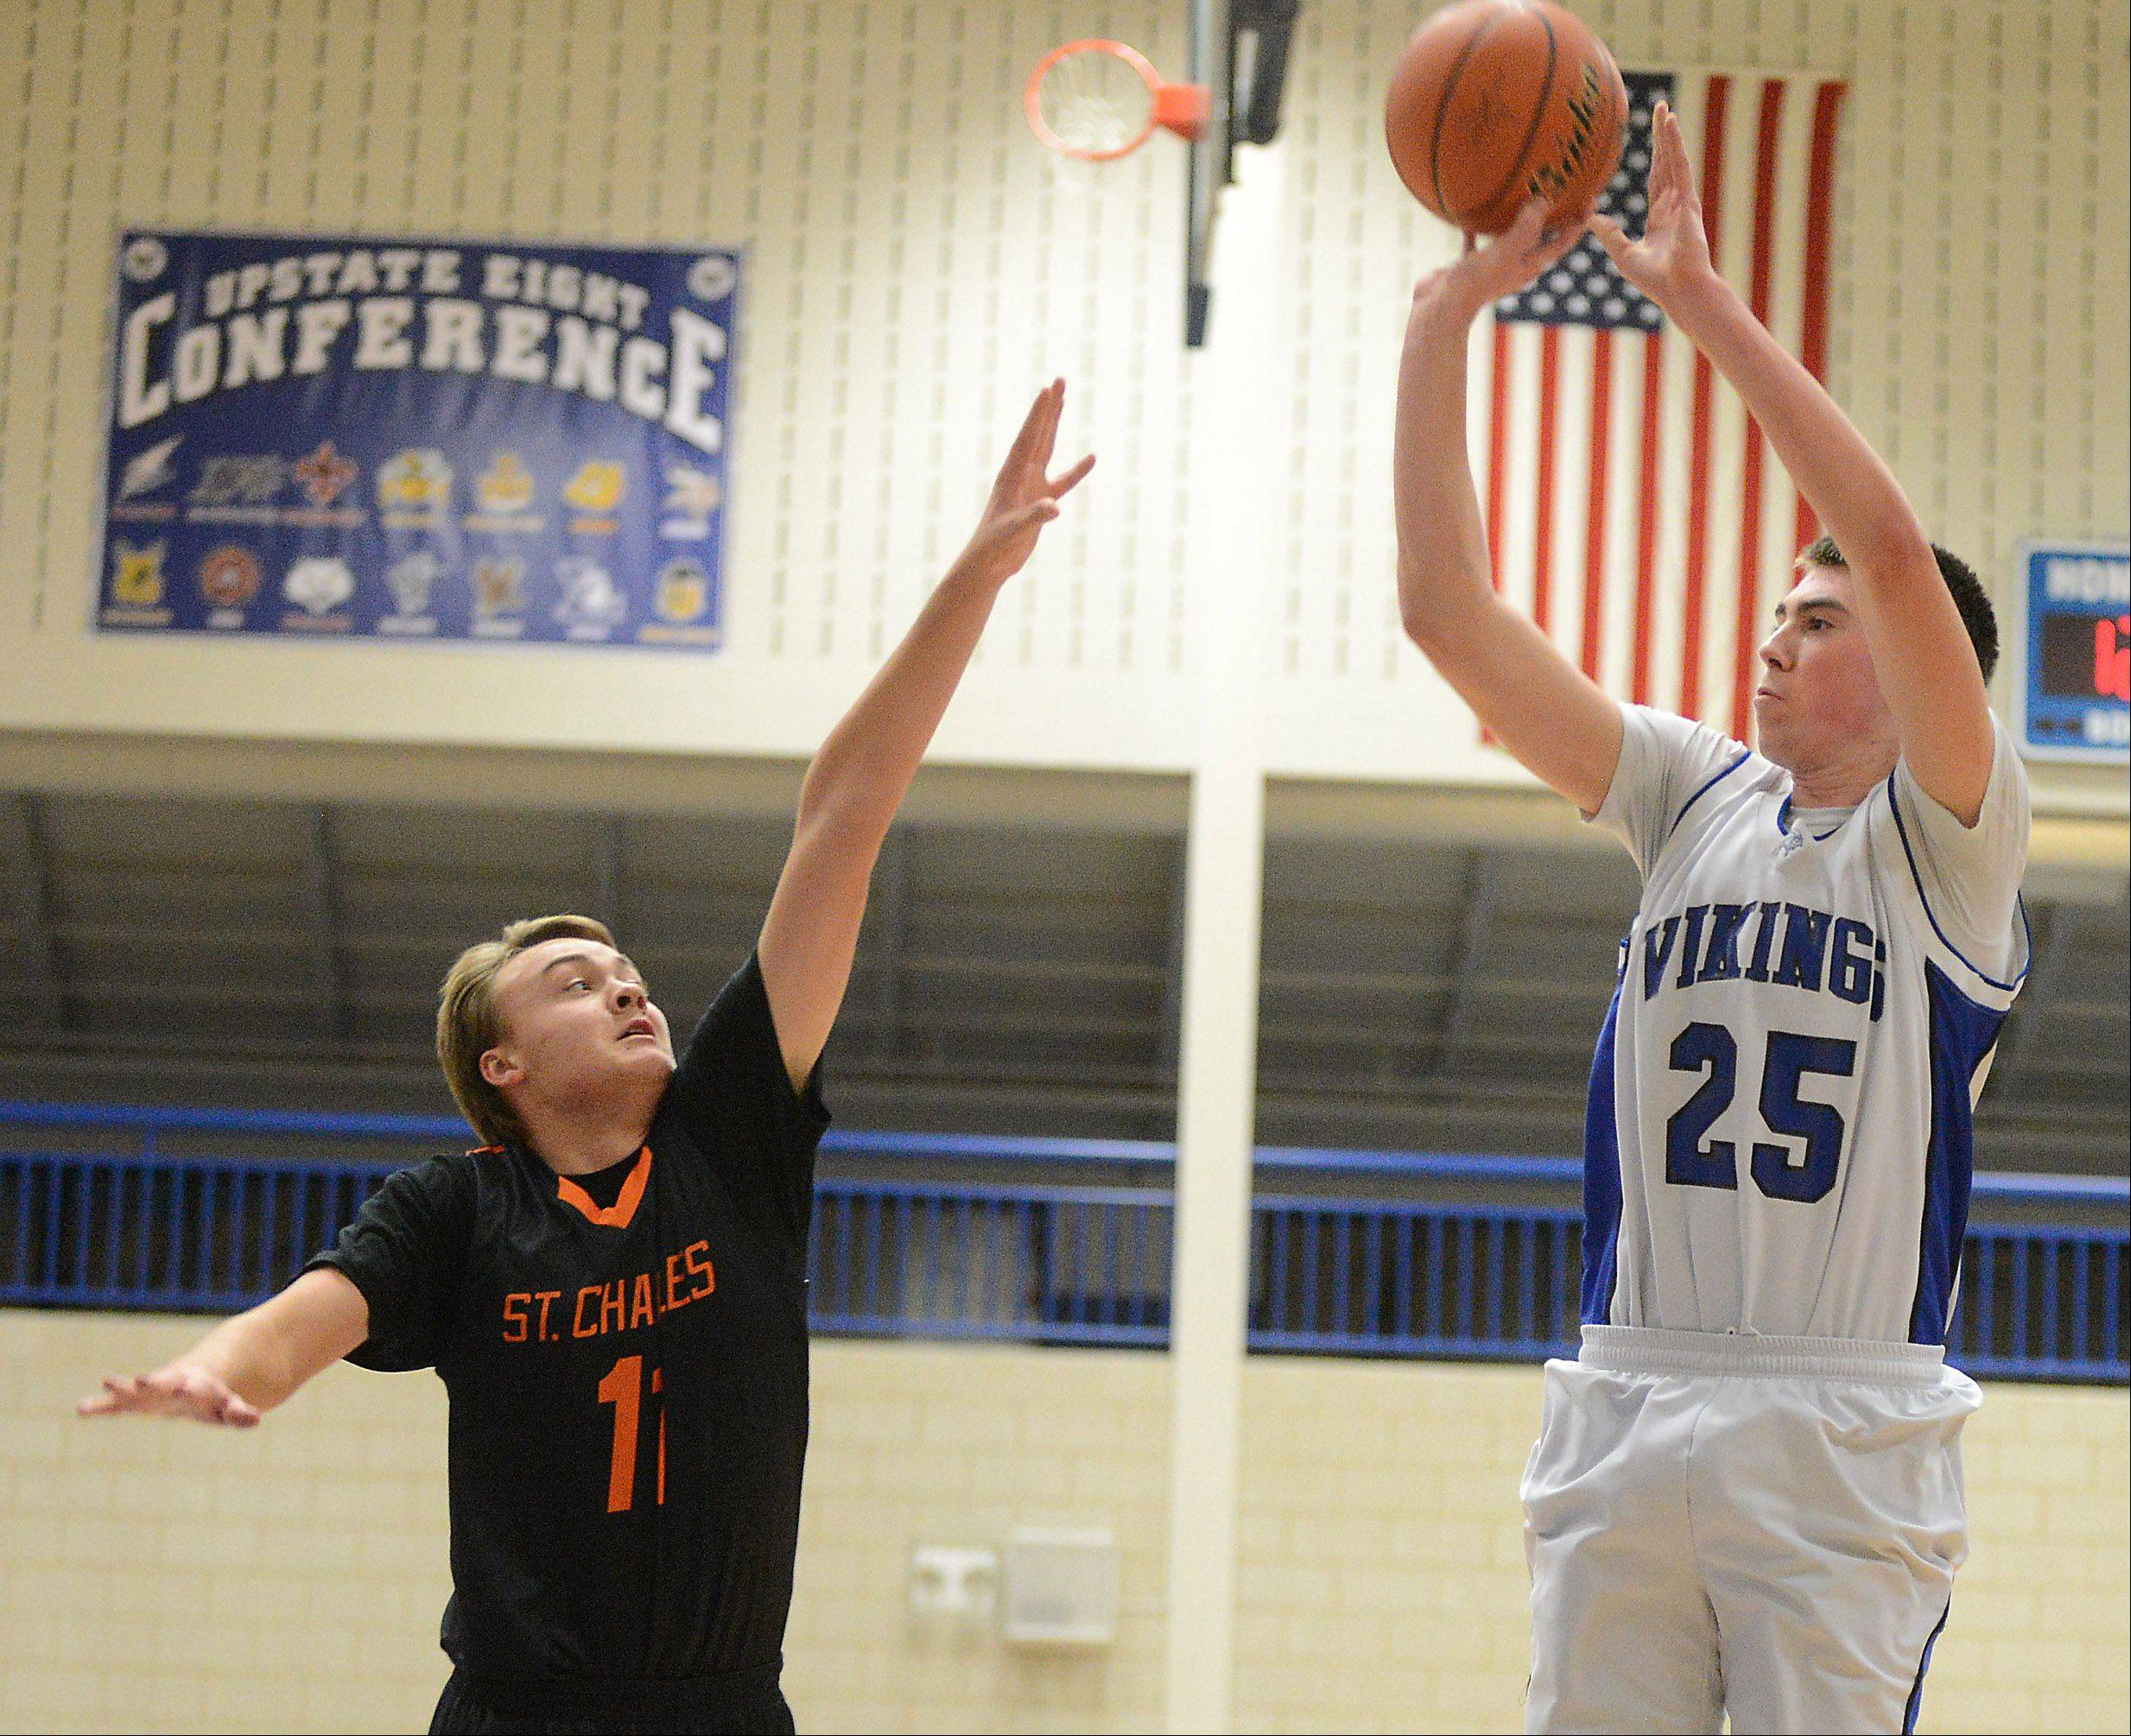 Geneva's Nate Navigato (25) shoots over St. Charles East's Mick Vyzral (11) during Friday's game in Geneva.